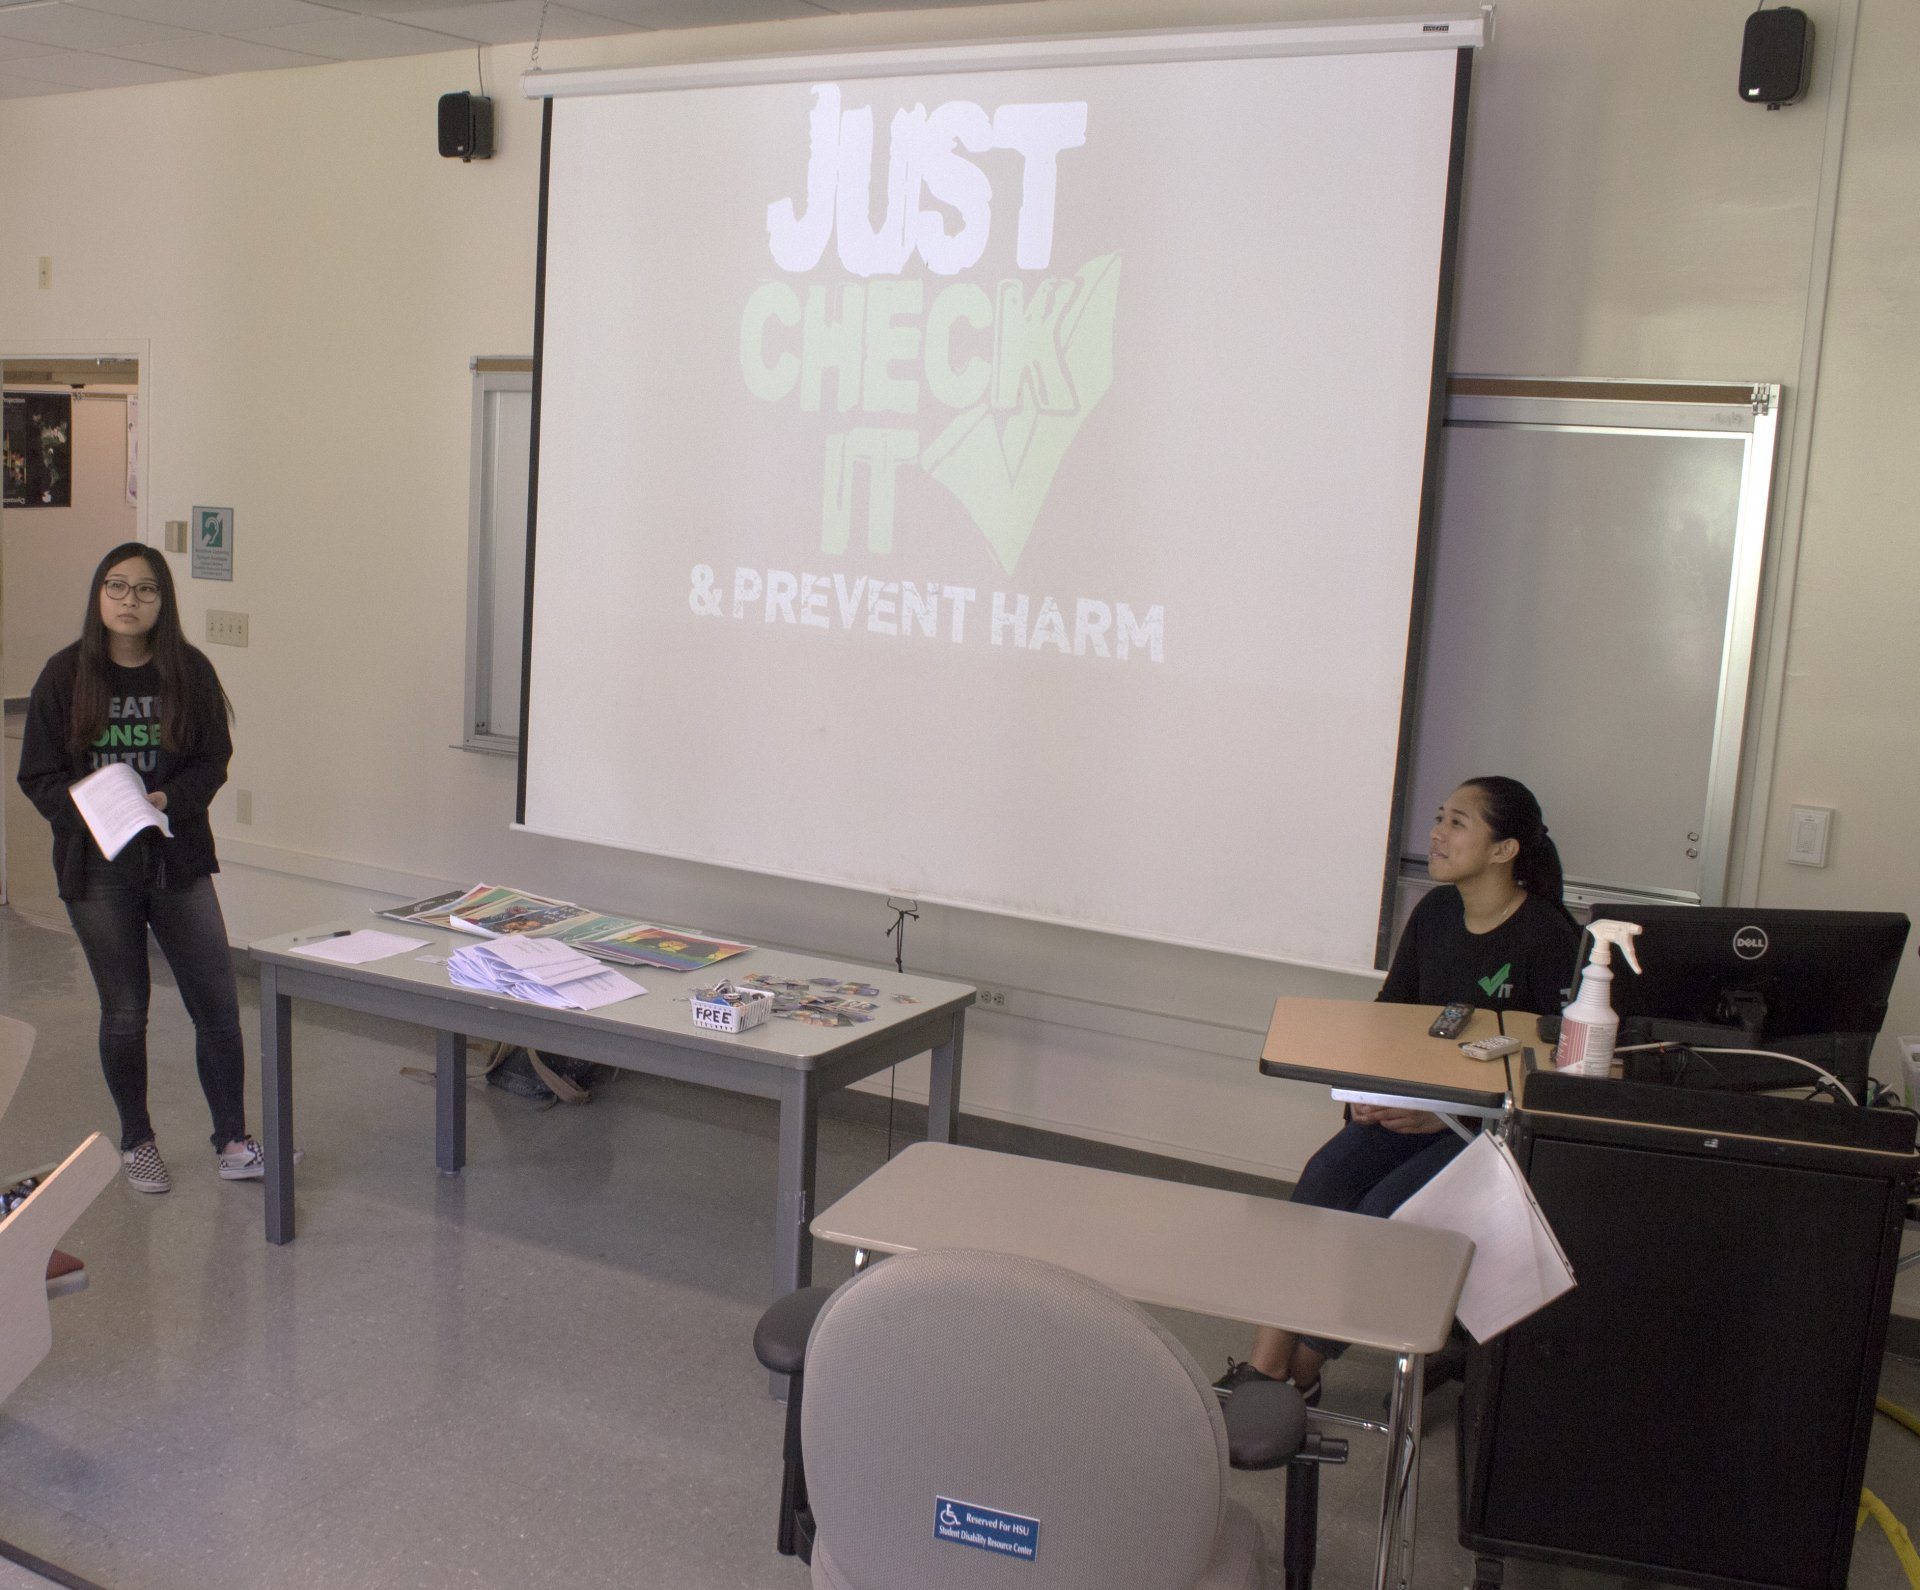 Skye Peredeo (right), 21,  and Adrienne Bahn, 19, hosts the Check It Bystander Intervention workshop on March 29. The workshop focused on teaching students the tools to intervene when they witness a moment of harm in the community. Photo by Abigail LeForge.